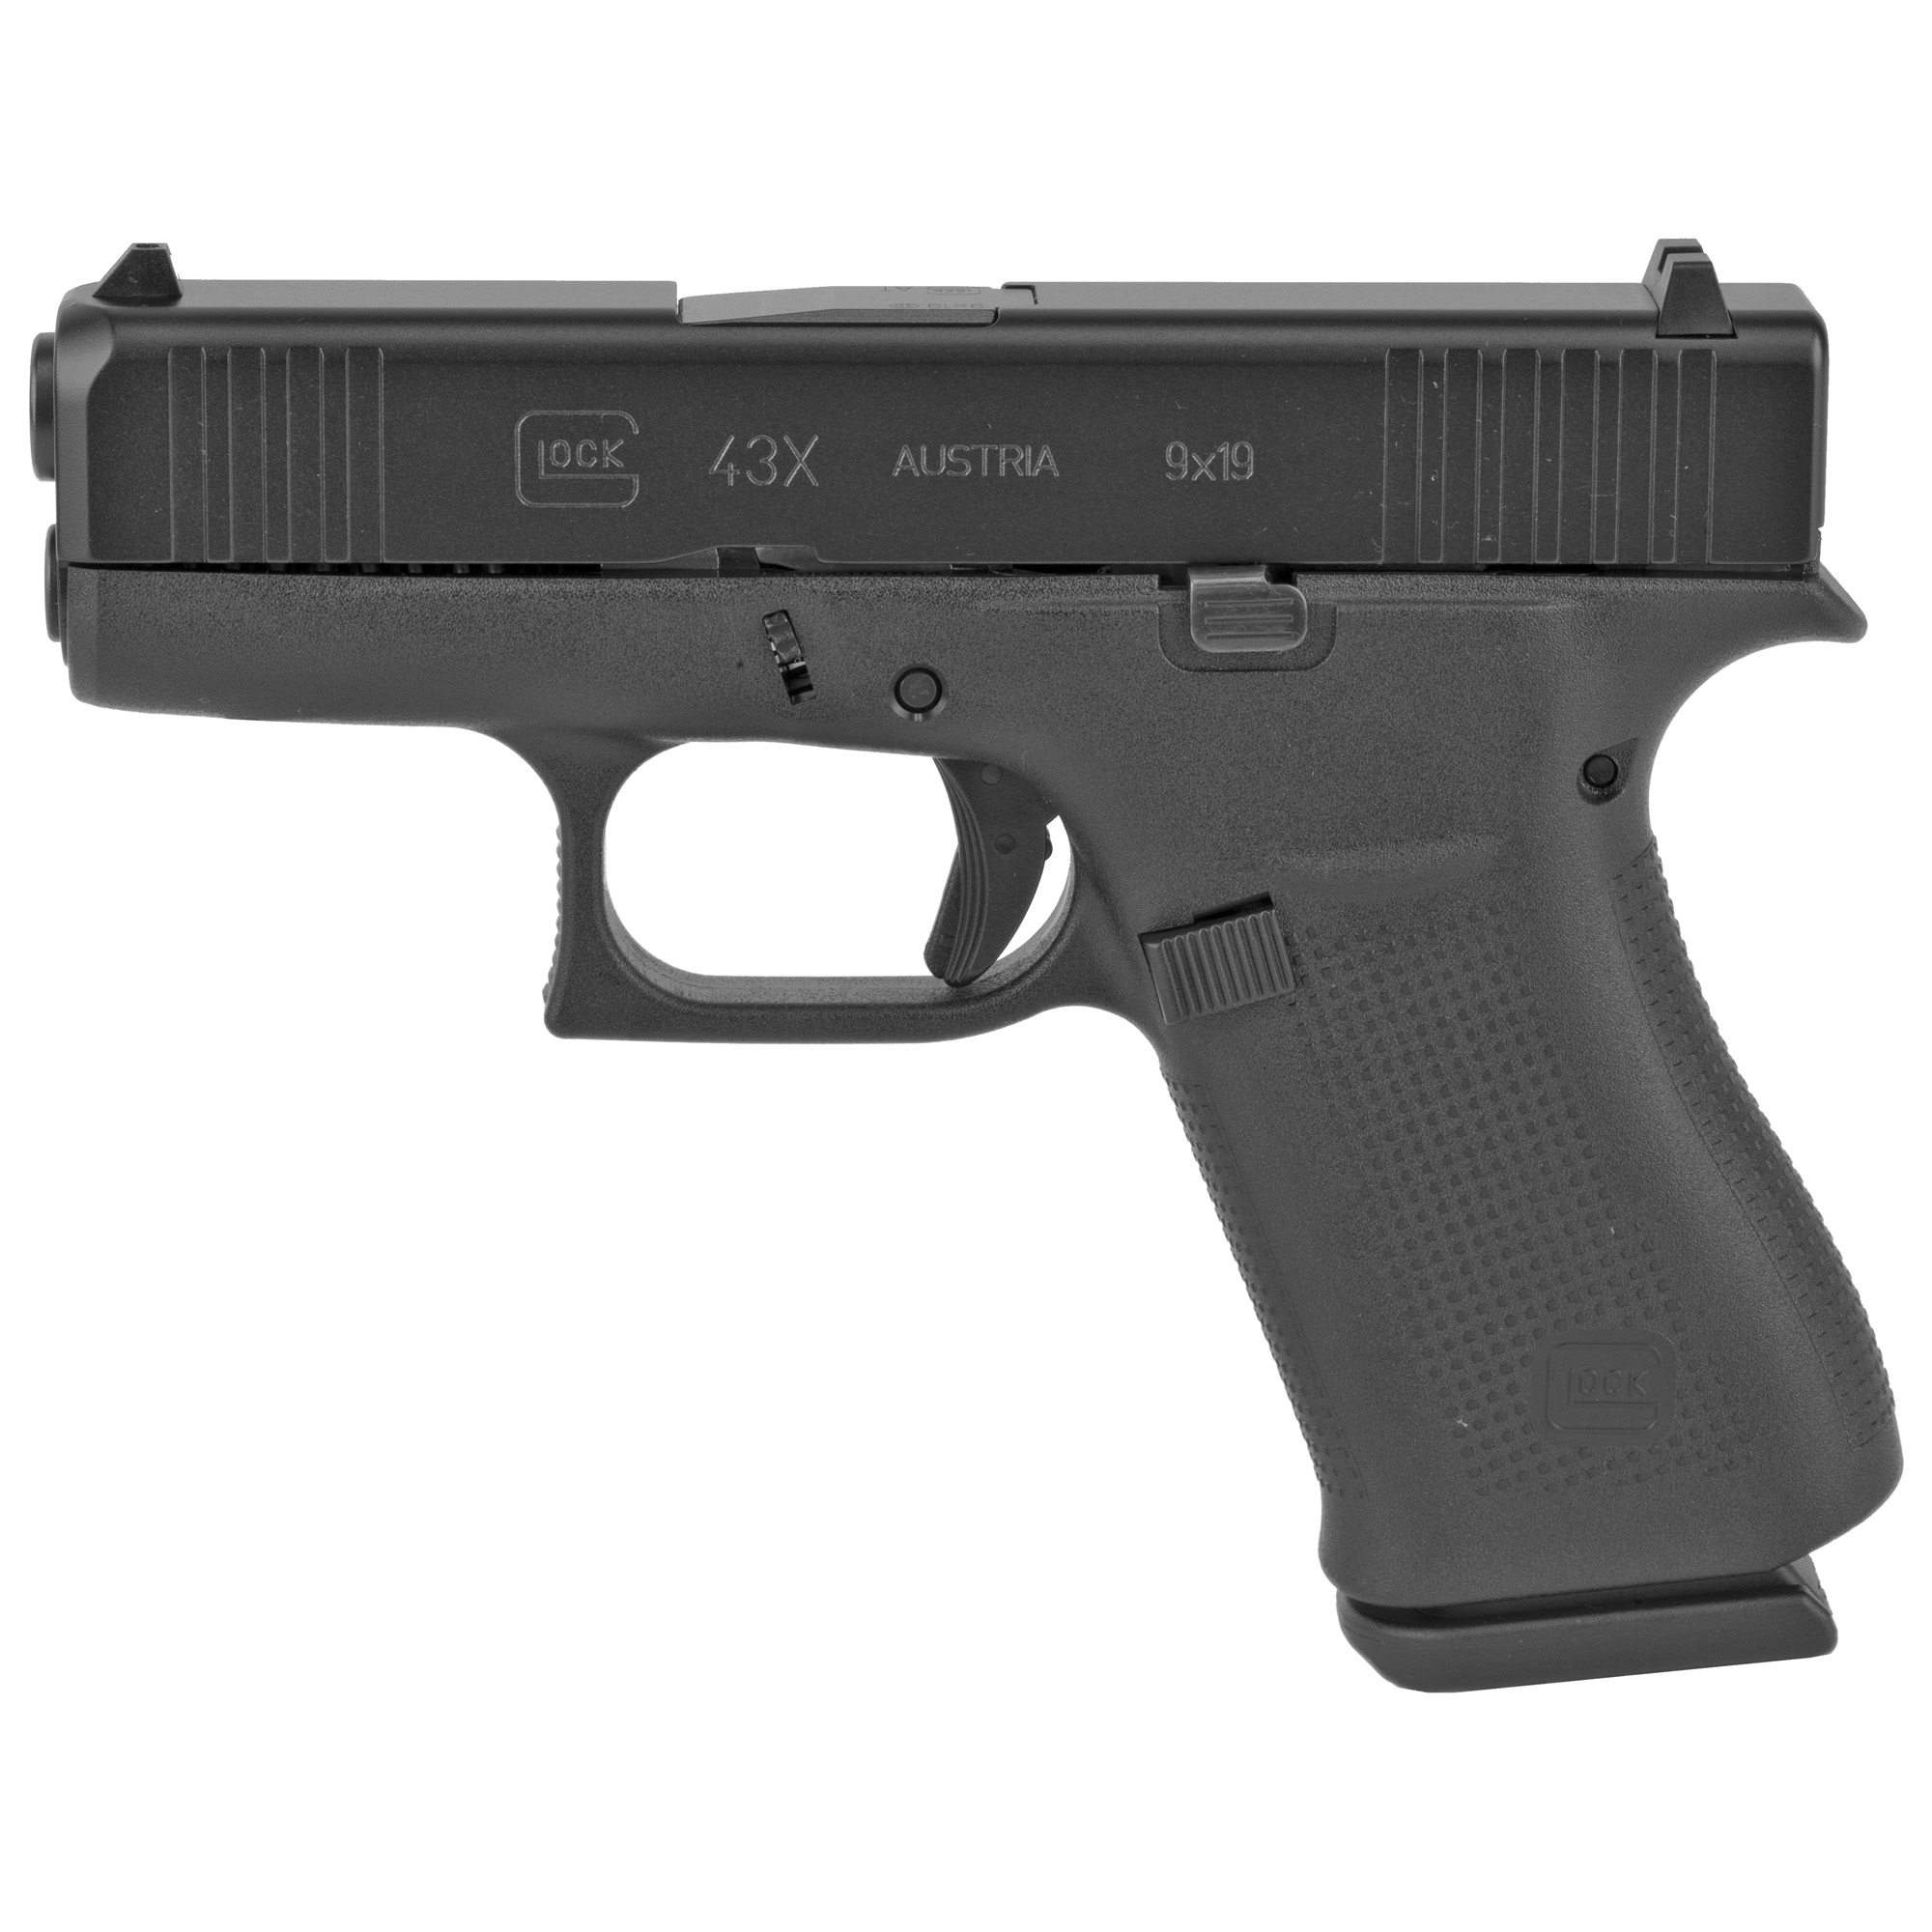 Glock 43X 9mm Subcompact just $525 out-the-door!